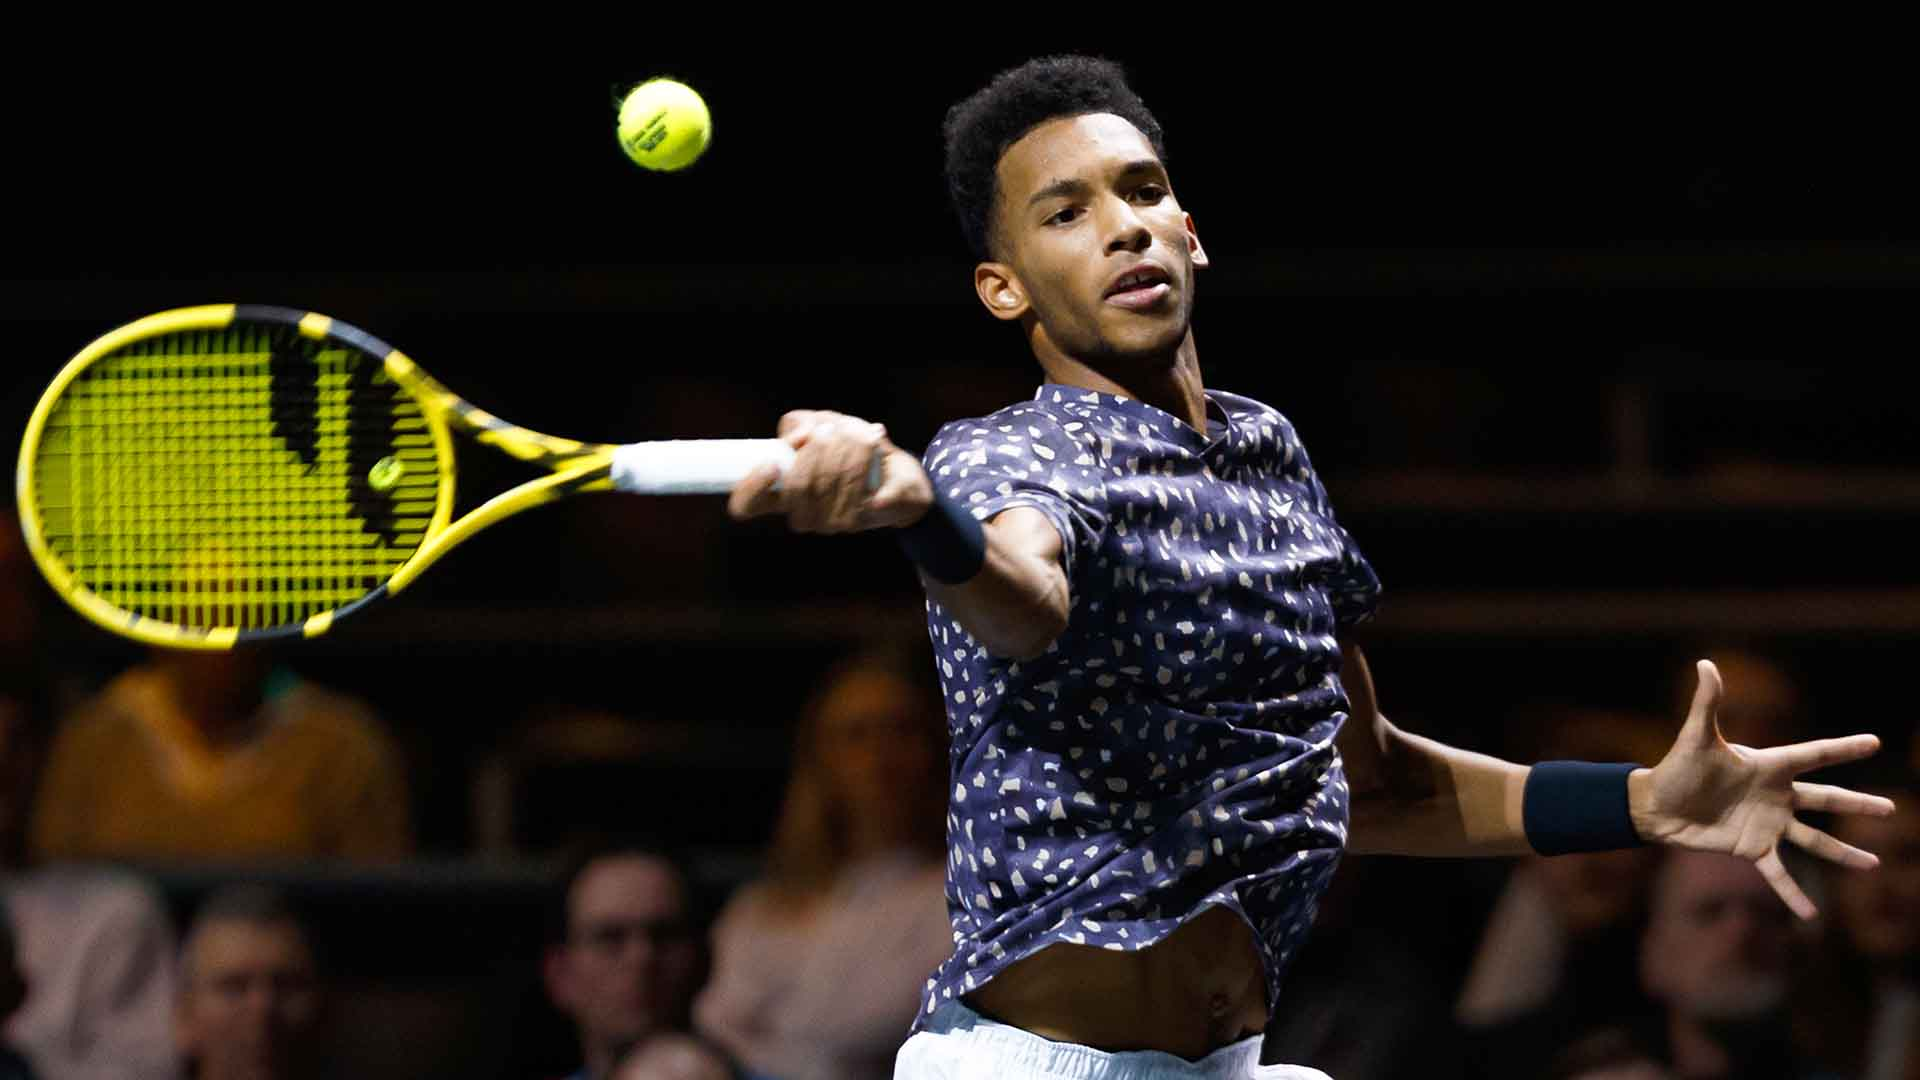 Felix Auger-Aliassime has reached two ATP Tour semi-finals this year.